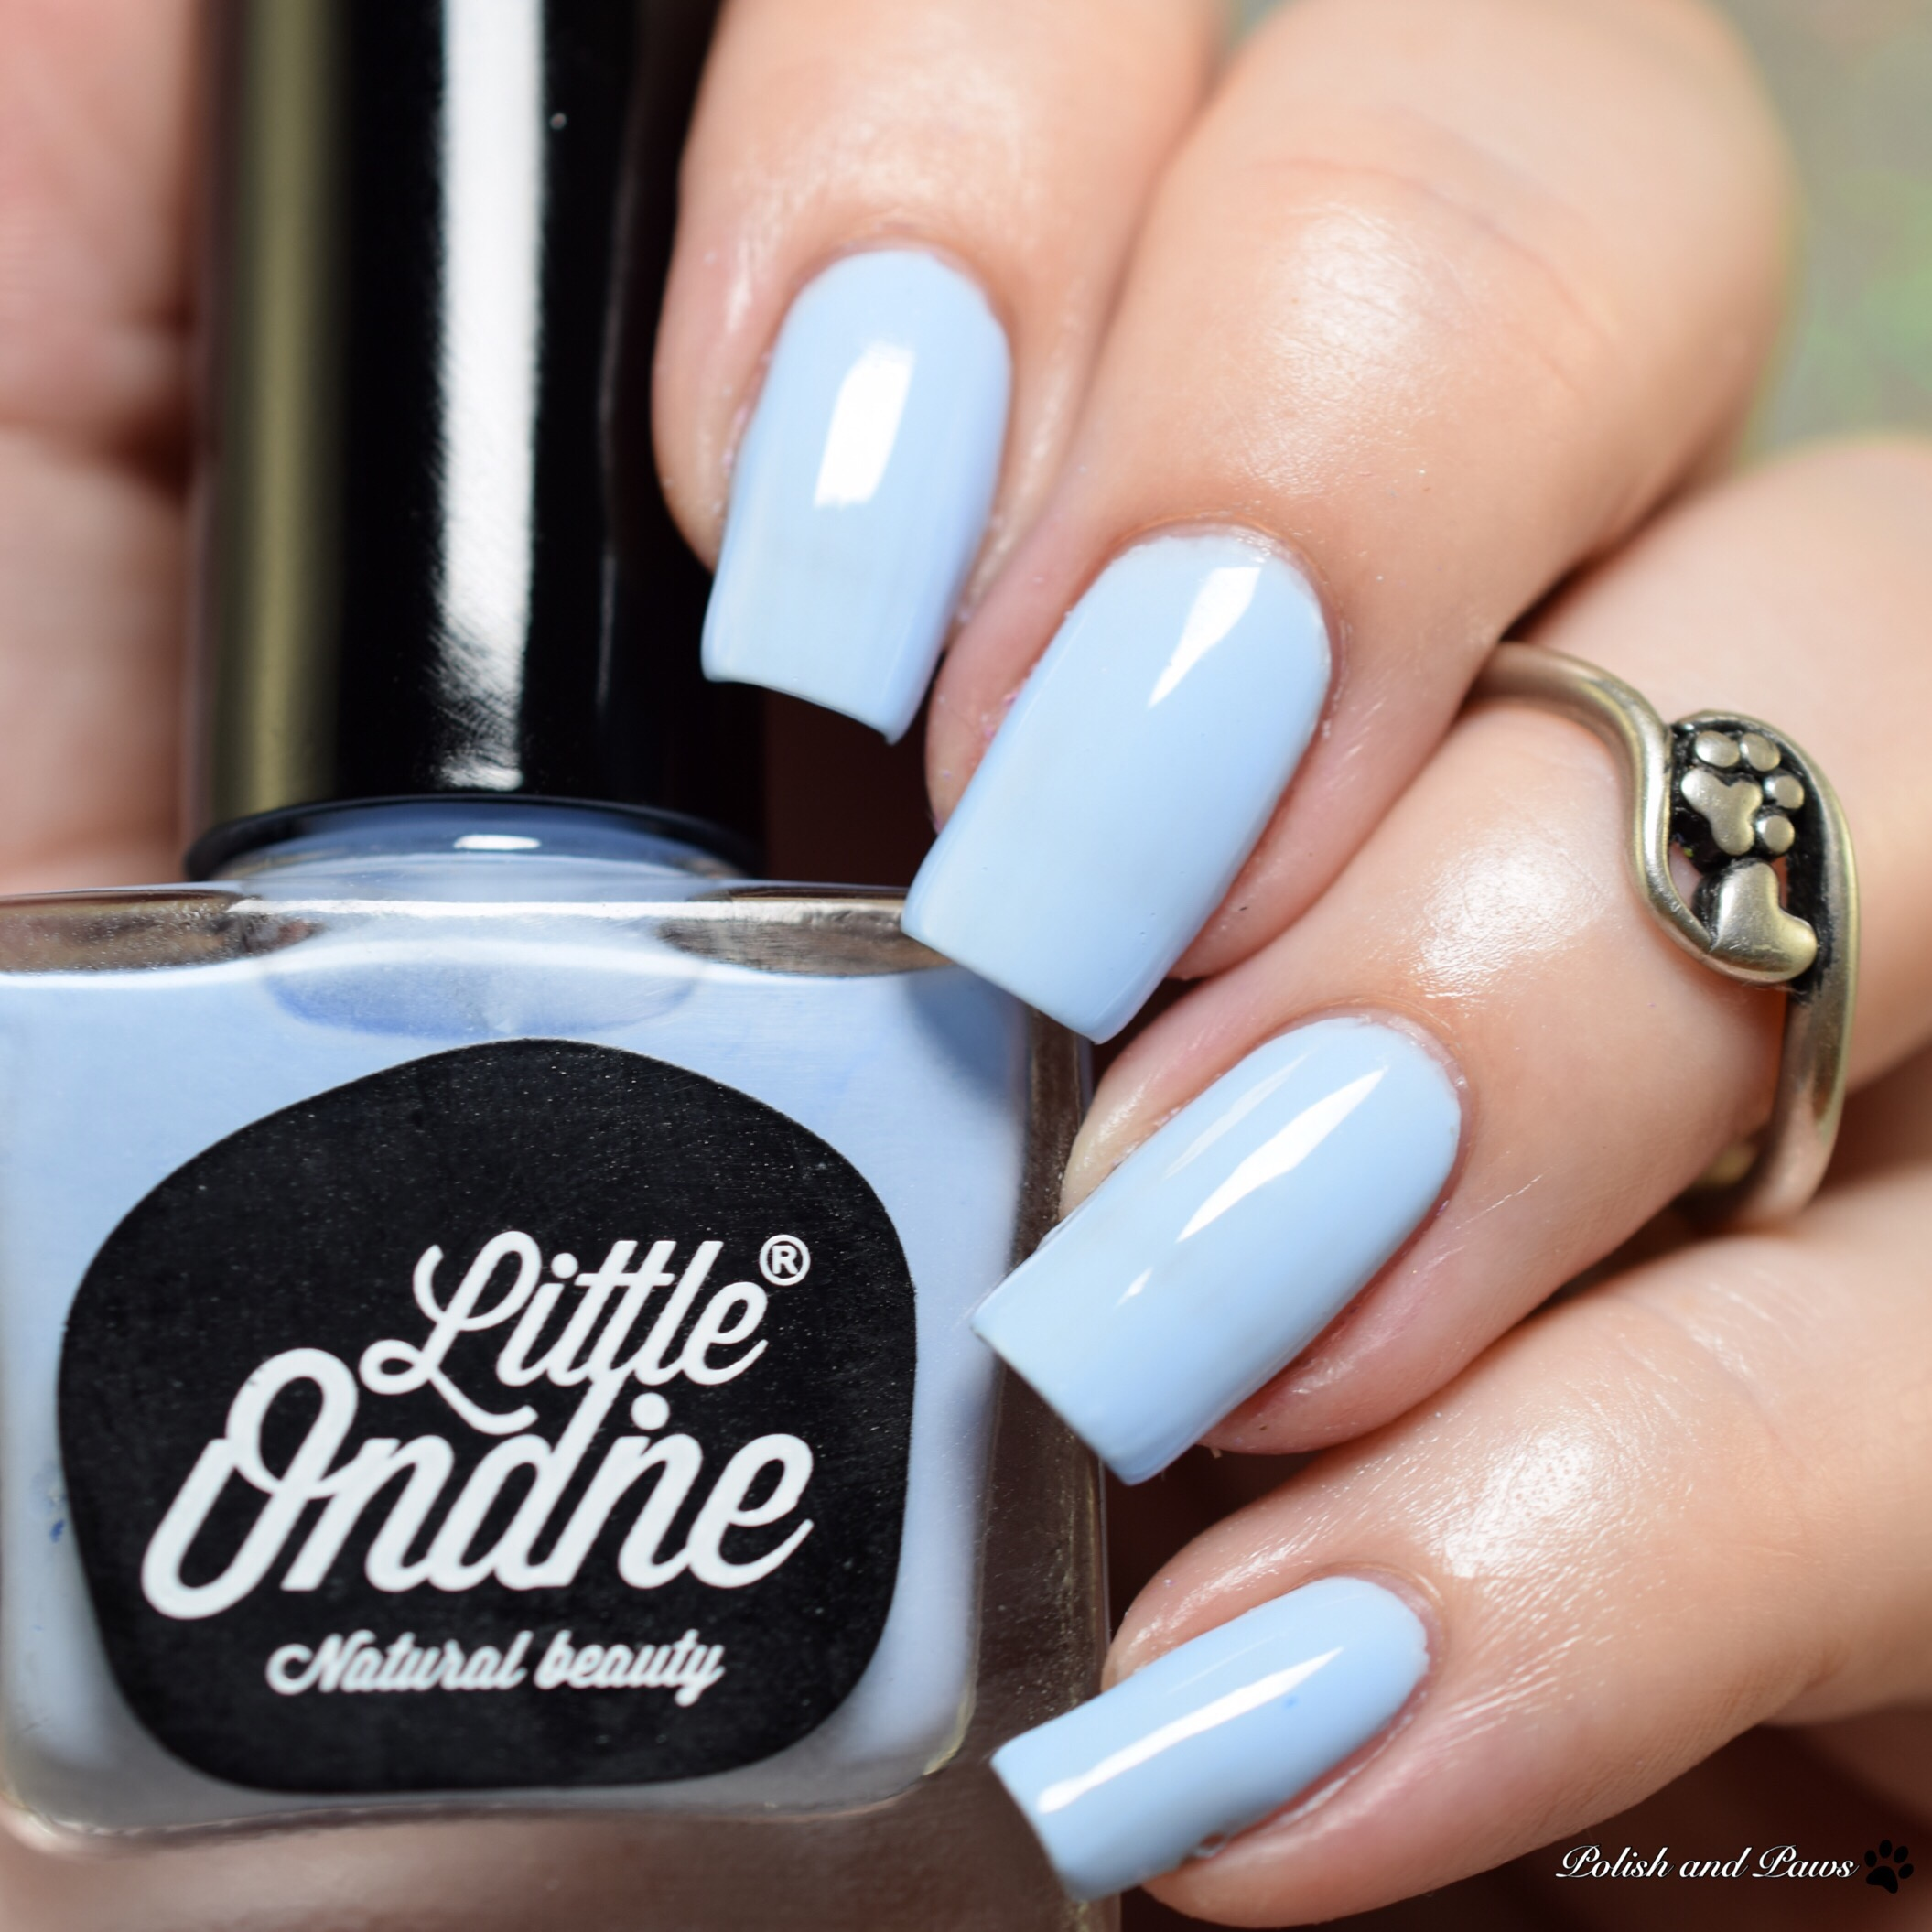 Little Ondine Water-Based Nail Polish | Polish and Paws